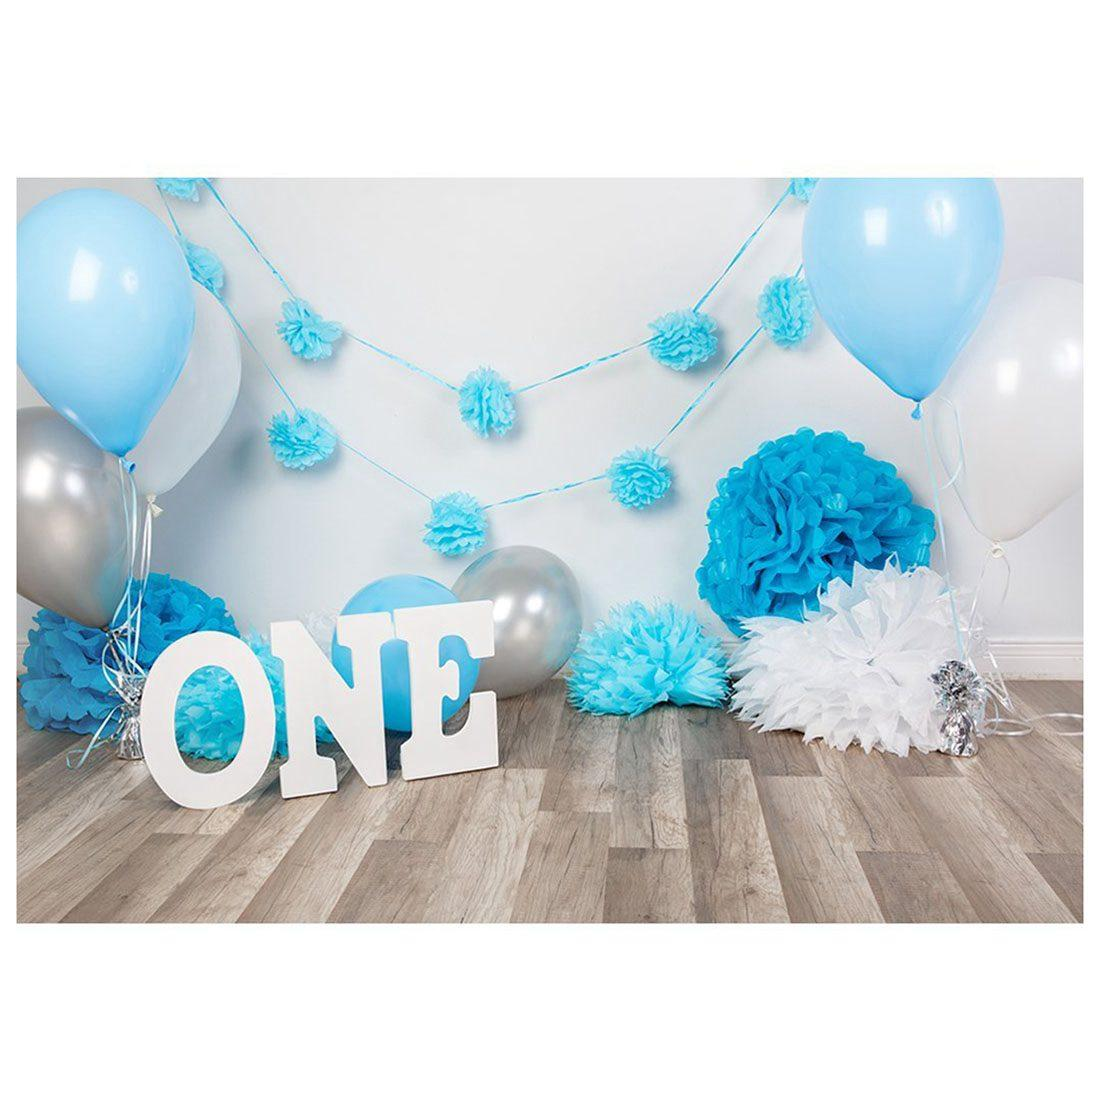 2019 7x5ft Photography Backdrops Baby Boys 1st Birthday Blue Balloons Flowers Party Banner Studio Booth Background Photocall From Prudenco 2266